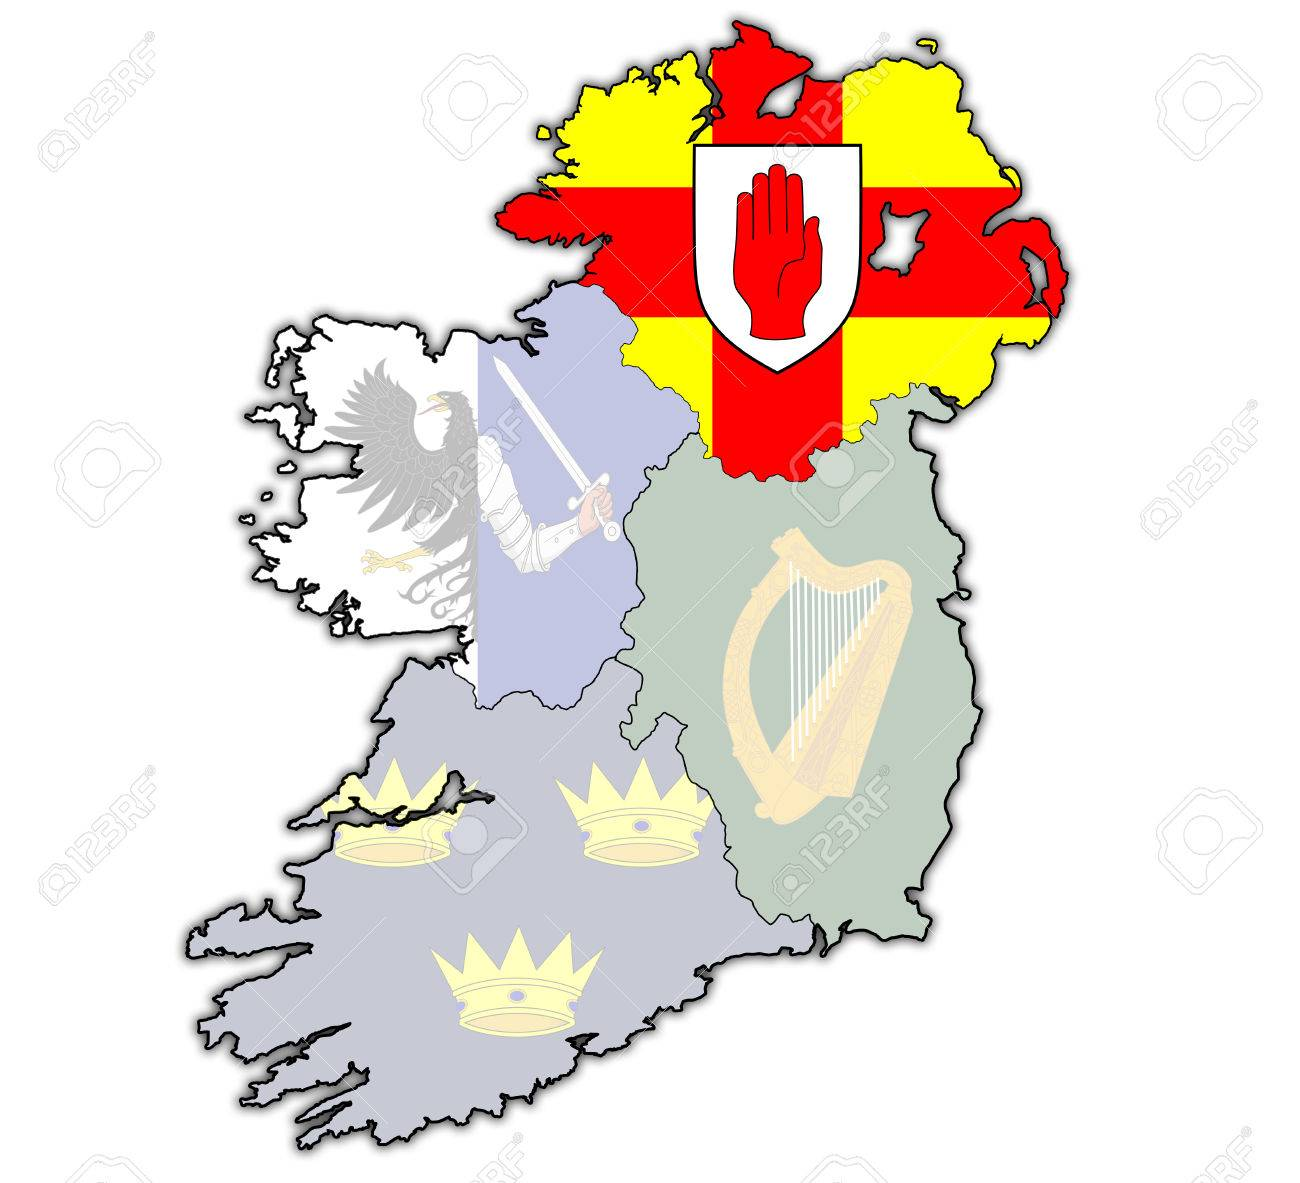 Ulster With Borders And Flags Of Provinces On Map Of Ireland Stock